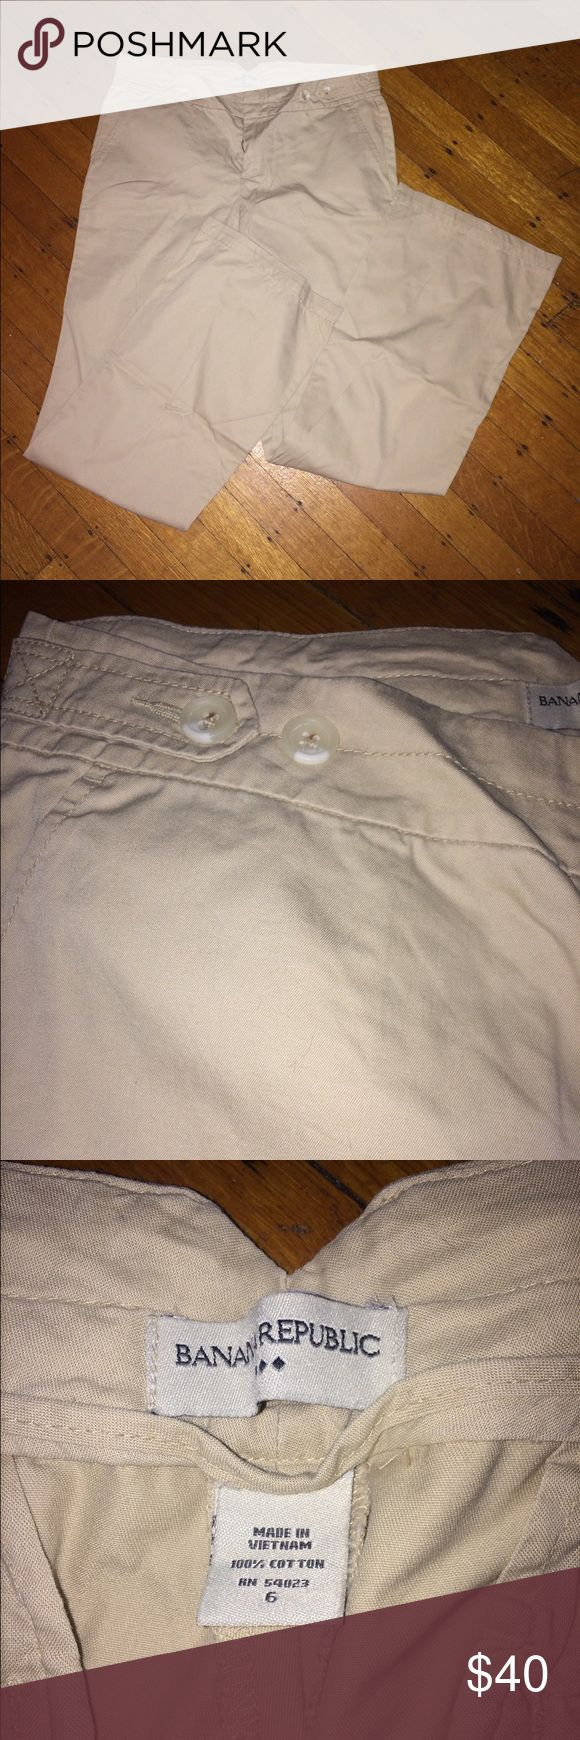 Banana Republic khaki pants Like new. Worn only a few times. Size 6 Banana Republic pants. Banana Republic Pants Trousers